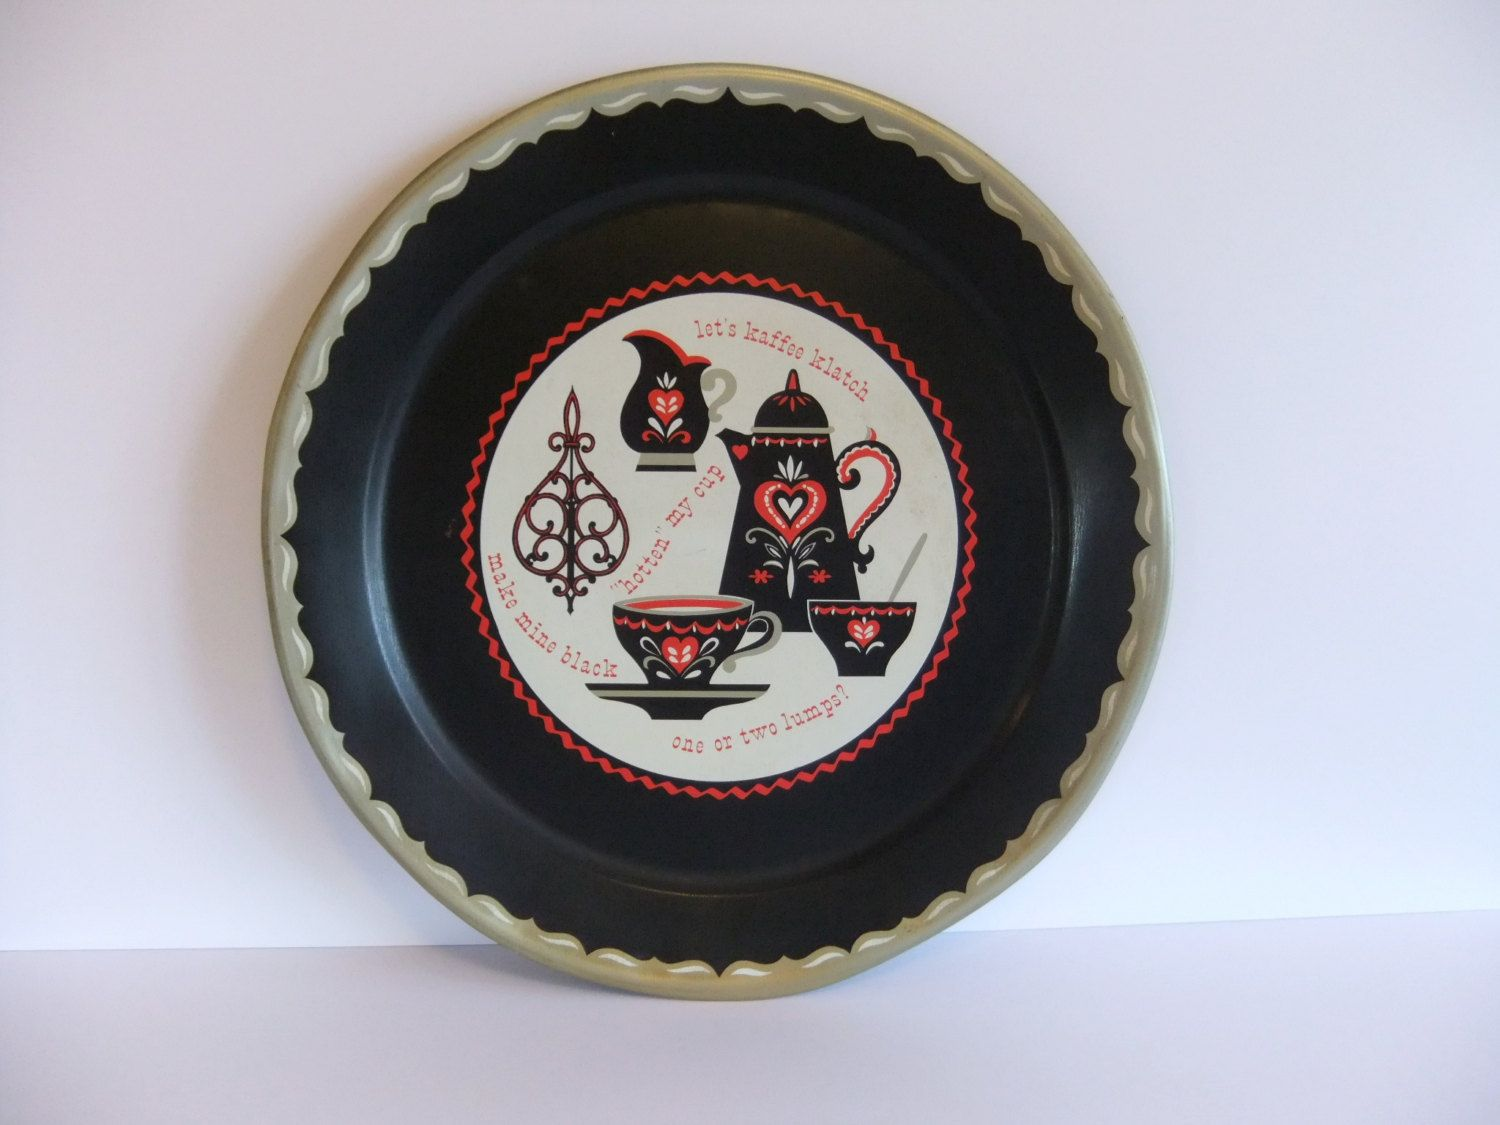 Serving tray vintage metal round tray large round tray amish folk